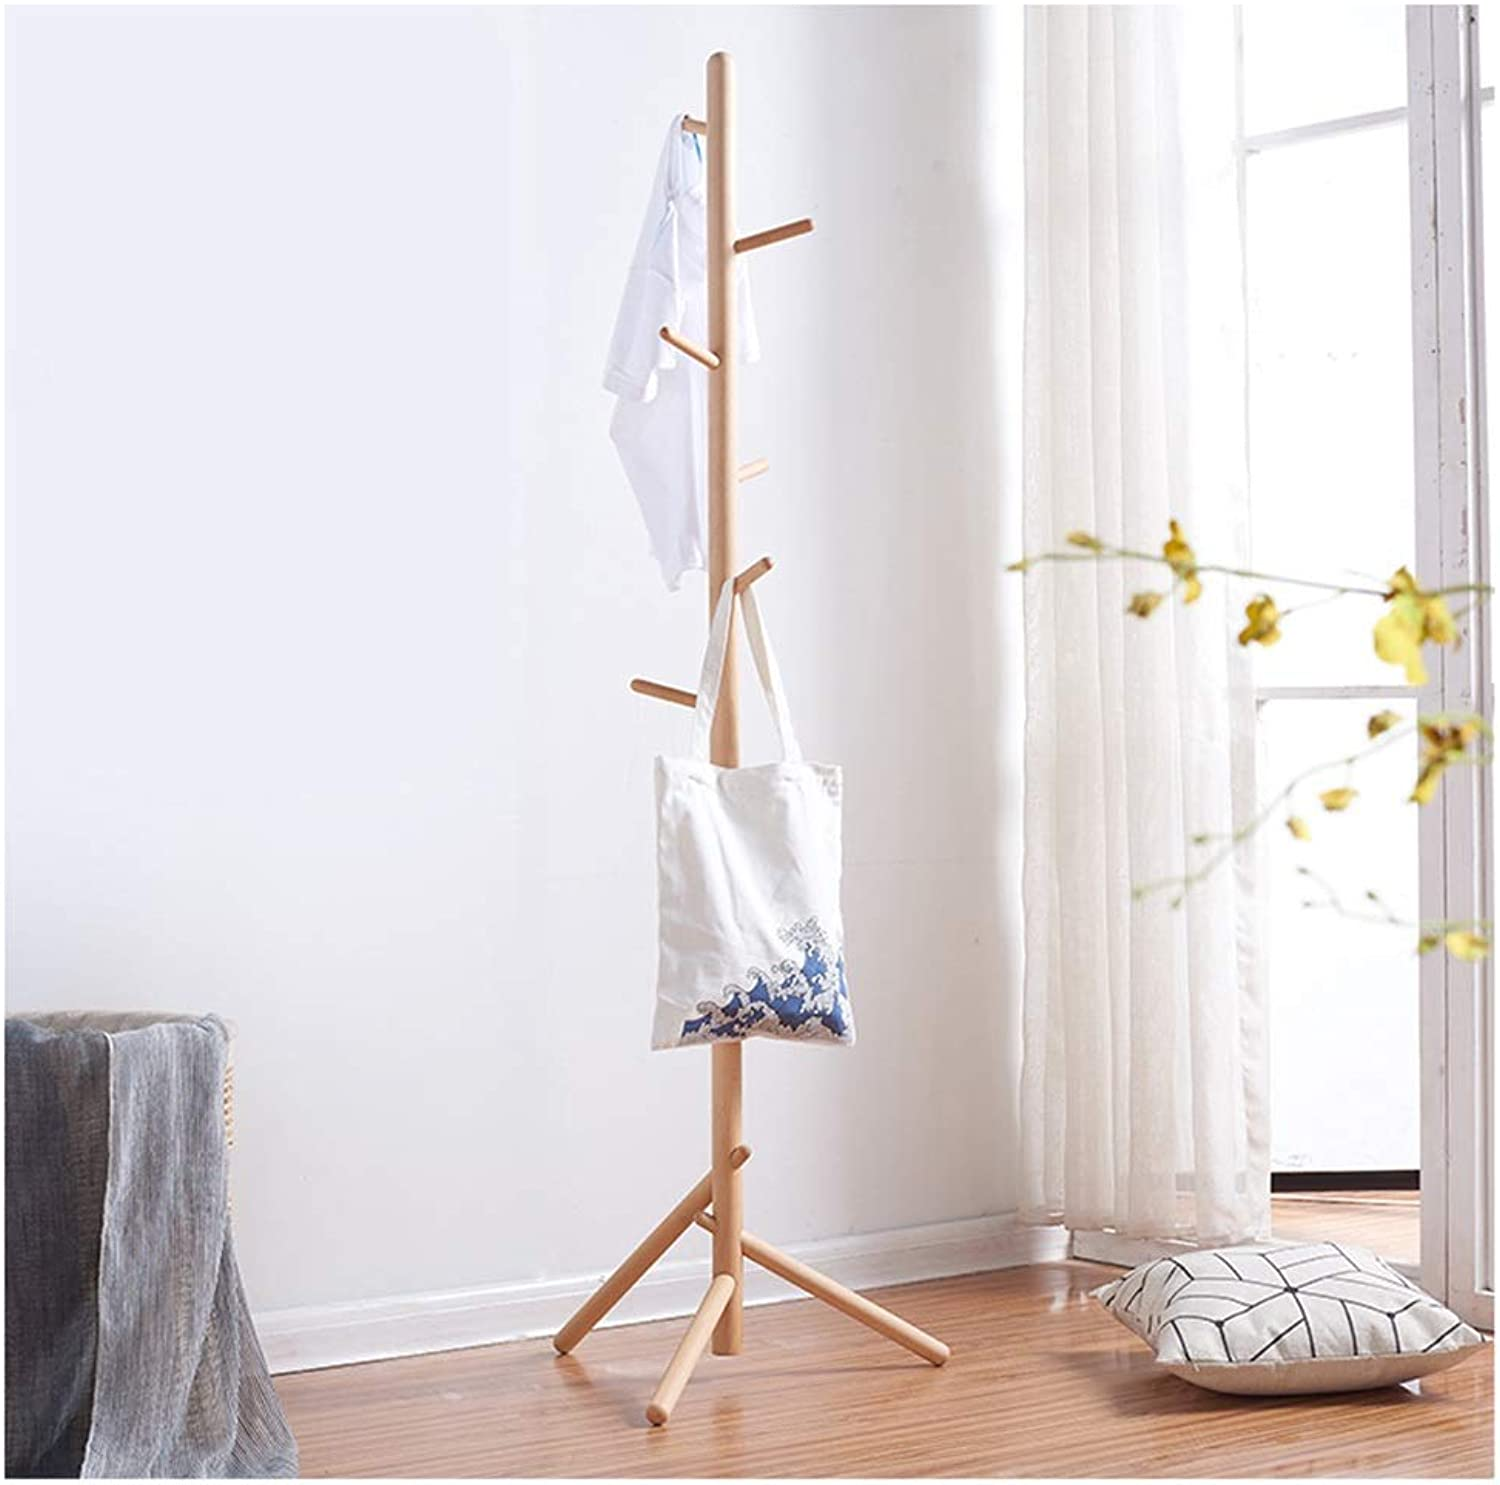 Standing Coat Racks Coat Stand Clothes Rack,Large Hat and Coat Stand with Hooks and shoes Rack, Multifunctional Hall Tree Hall Trees Bedroom Hallway -0223